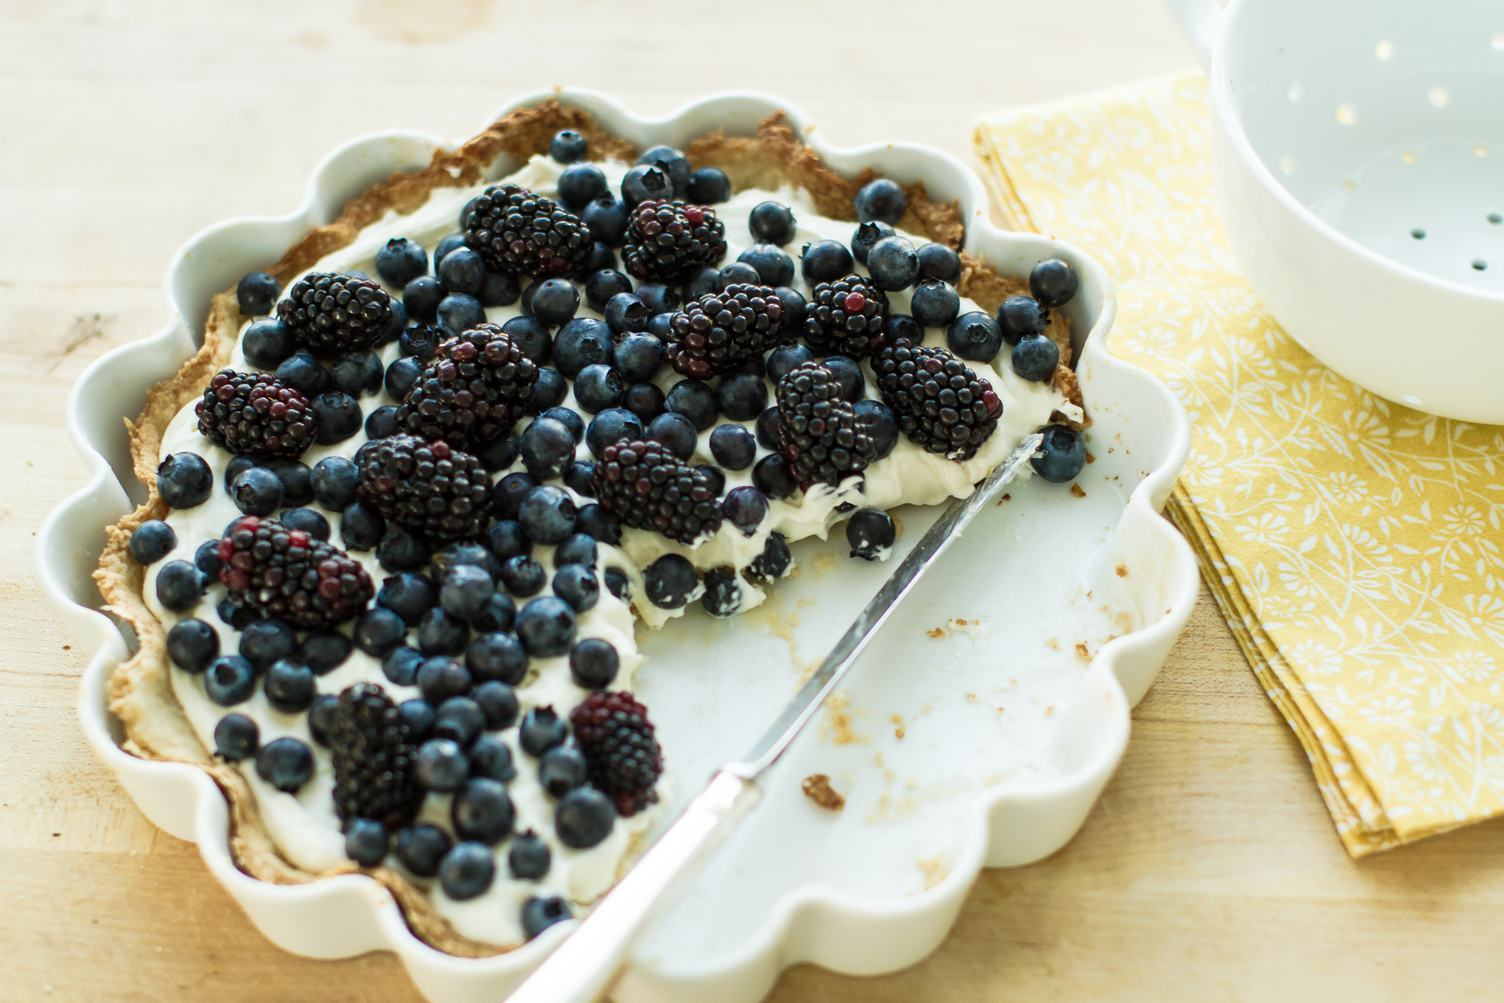 Delicious Tart with Blackberries and Blueberries